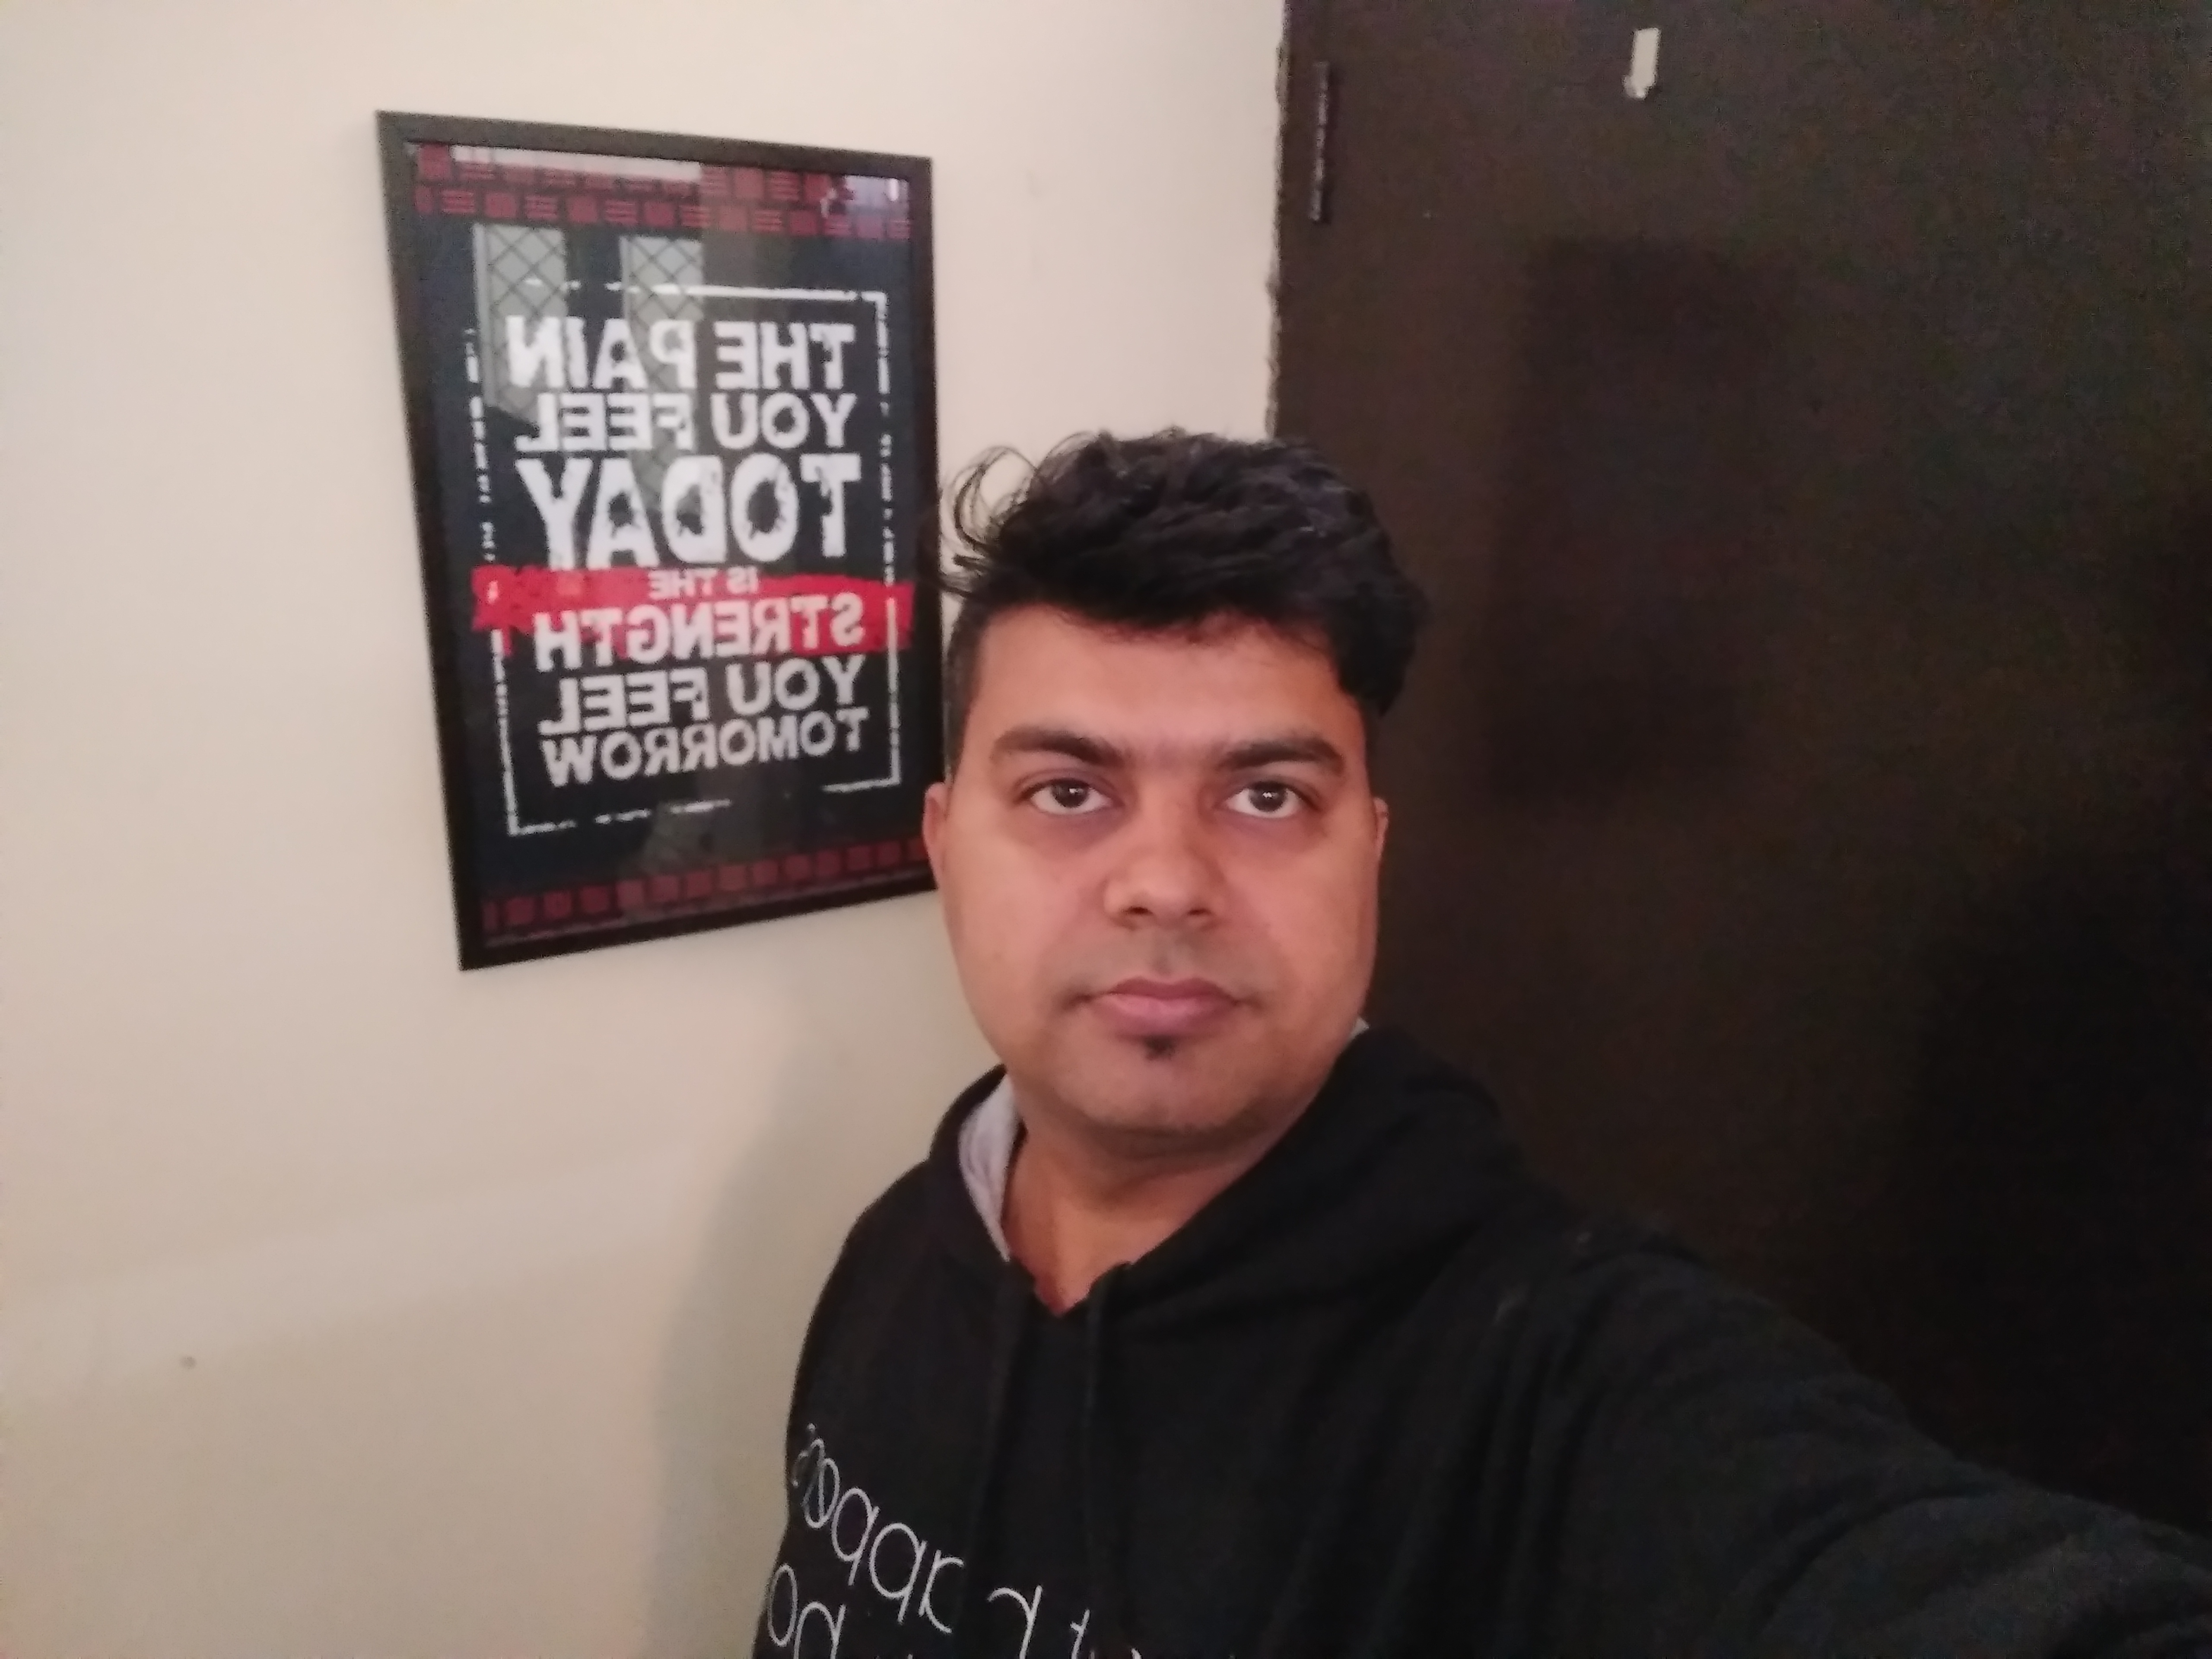 Awesome Most Front Cameras Struggle Visibly In Low Lighting Conditions. However,  These Testing Conditions Were Not Really Difficult For The V5 Plus, As  Evident From ... Idea